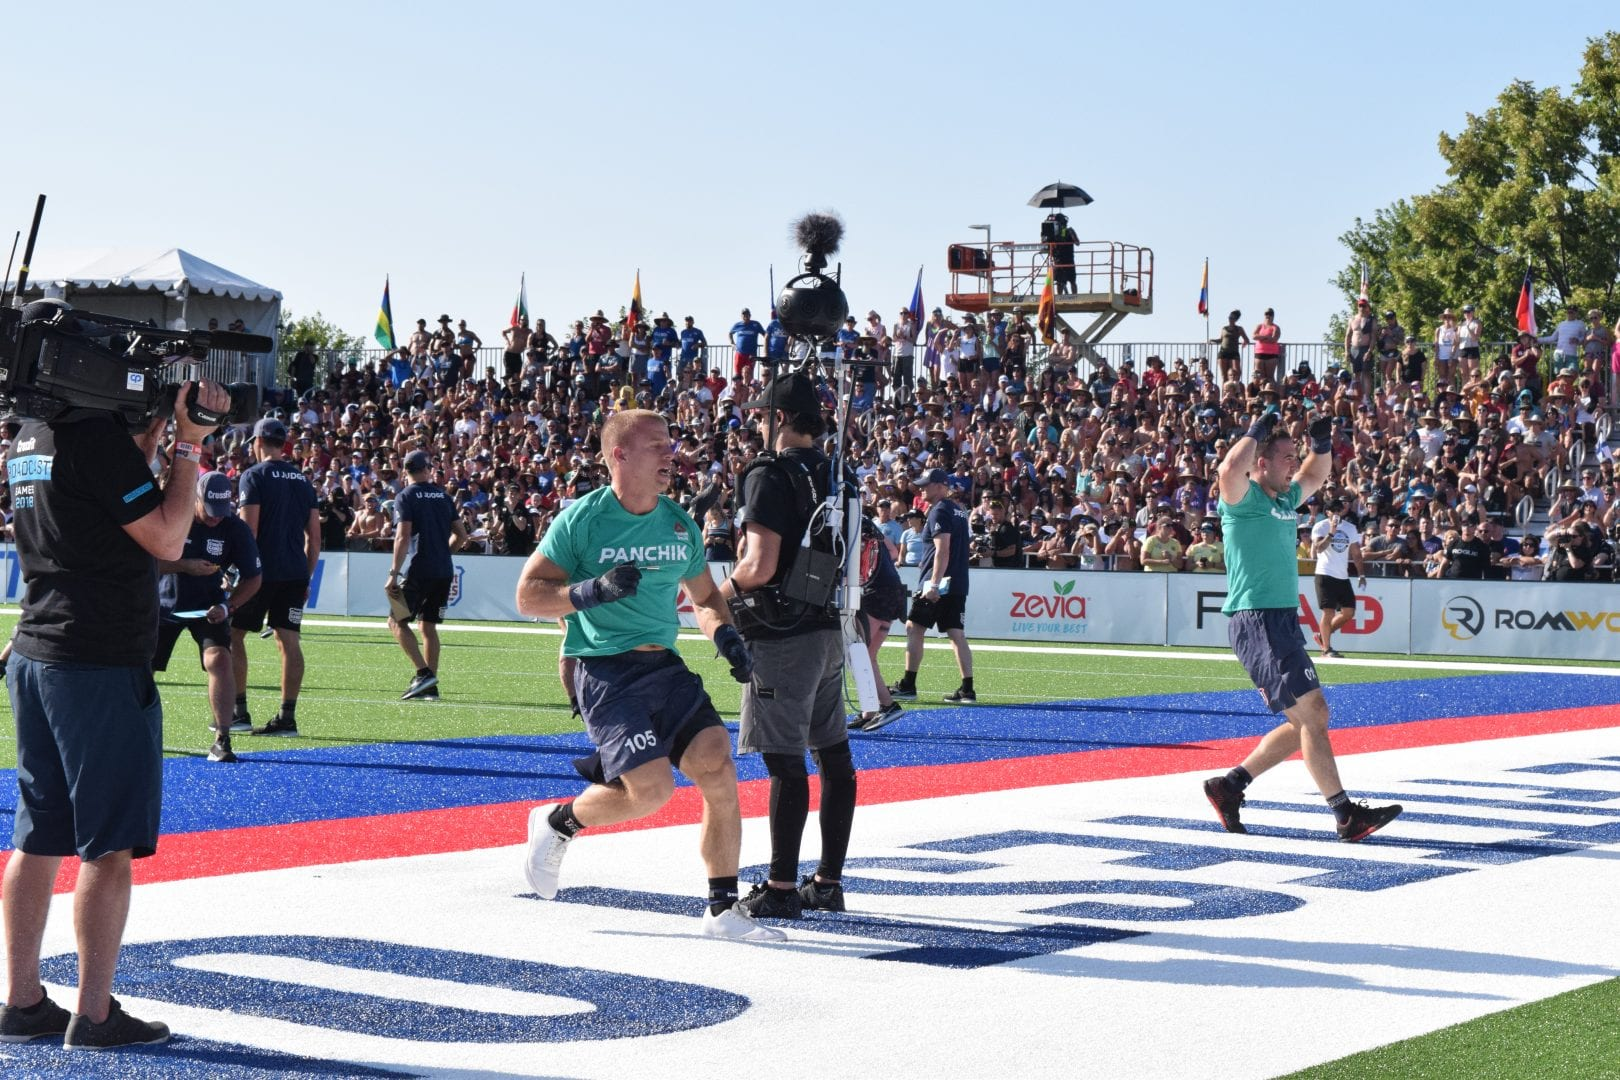 Scott Panchik crosses the finish line at the second event of the 2019 CrossFit Games